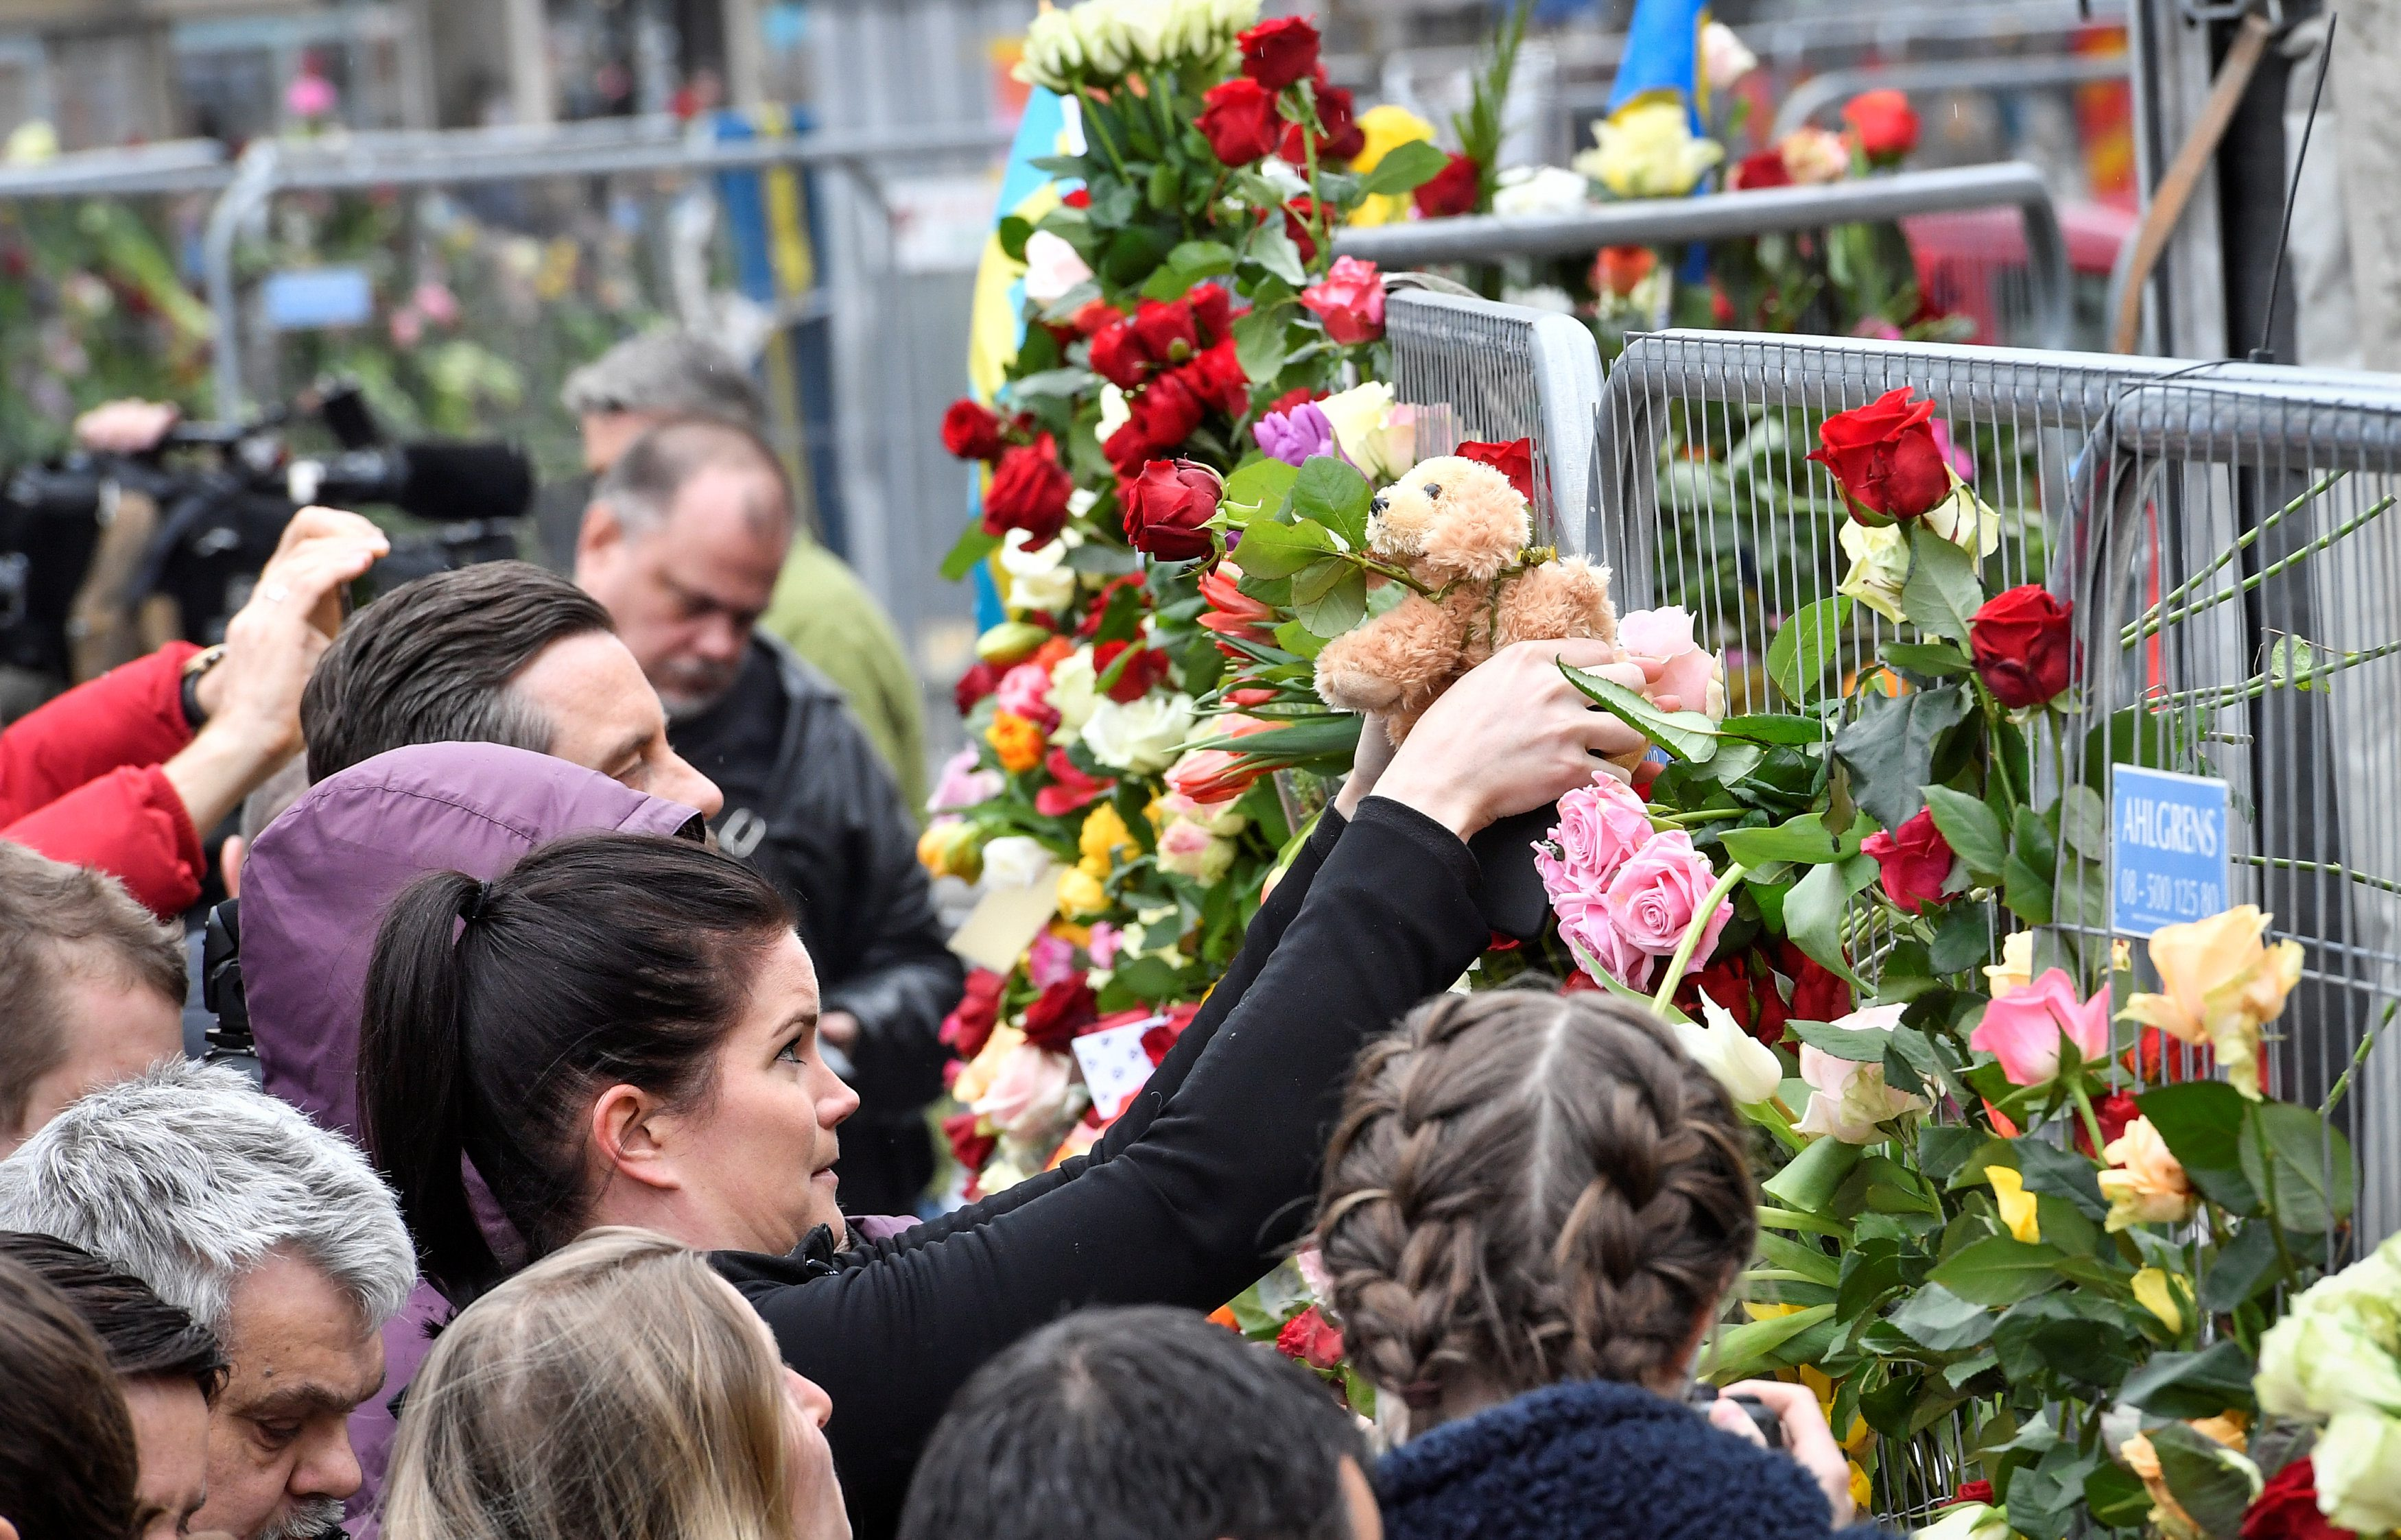 STOCKHOLM 2017-04-08 People gather at the crime scene near Ahlens department store in central Stockholm on April 08, 2017, the day after a hijacked beer truck plowed into pedestrians on Drottninggatan and crashed into Ahlens department store, killing four people, injuring 15 others. TT News Agency/Jonas Ekstromer/via REUTERS     ATTENTION EDITORS - THIS IMAGE WAS PROVIDED BY A THIRD PARTY. EDITORIAL USE ONLY. SWEDEN OUT.